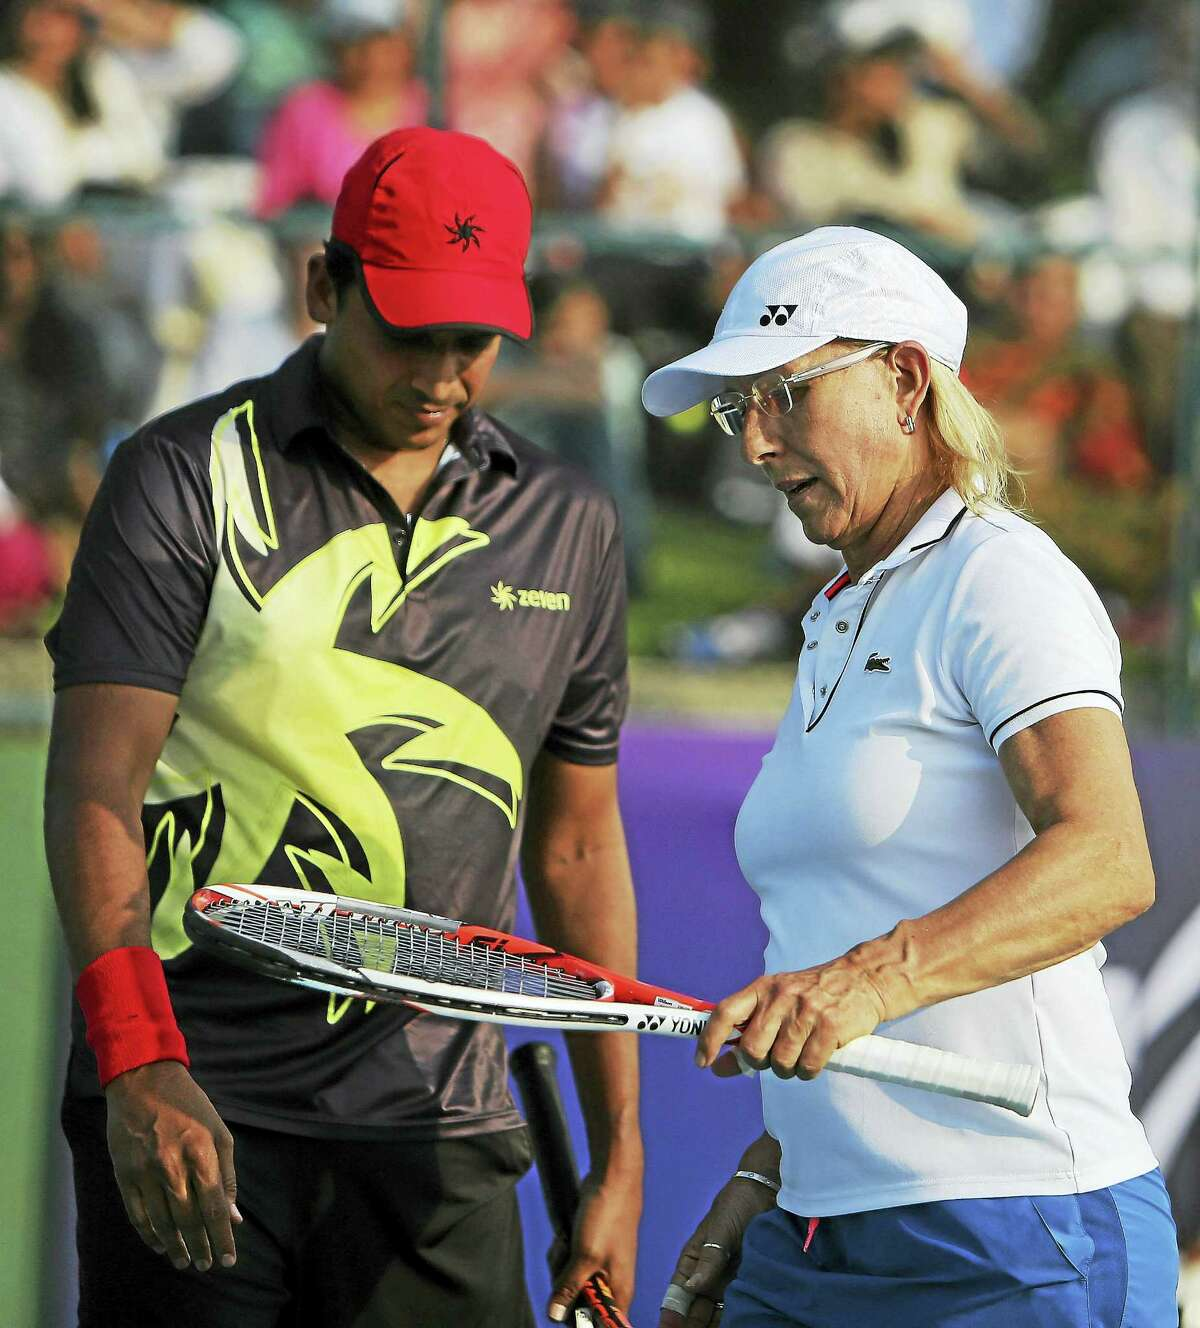 Tennis legend Martina Navratilova, right, speaks with her partner Mahesh Bhupathi during an exhibition mixed doubles match in India in 2015.